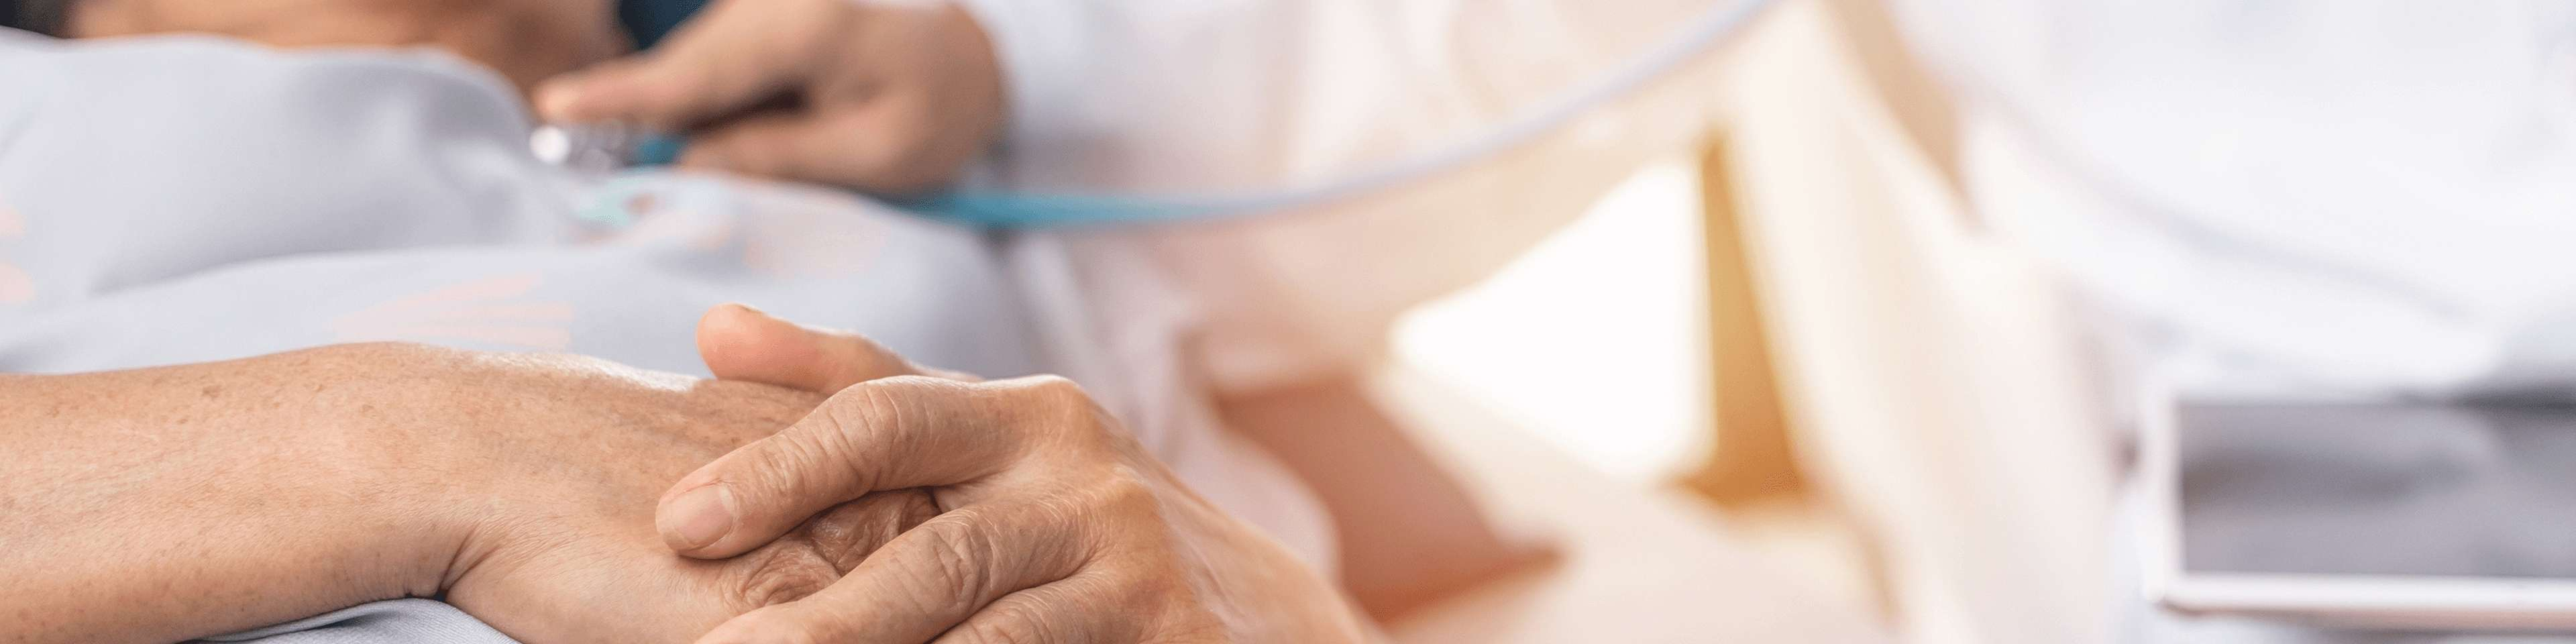 Centralized real-time sepsis surveillance improves outcomes